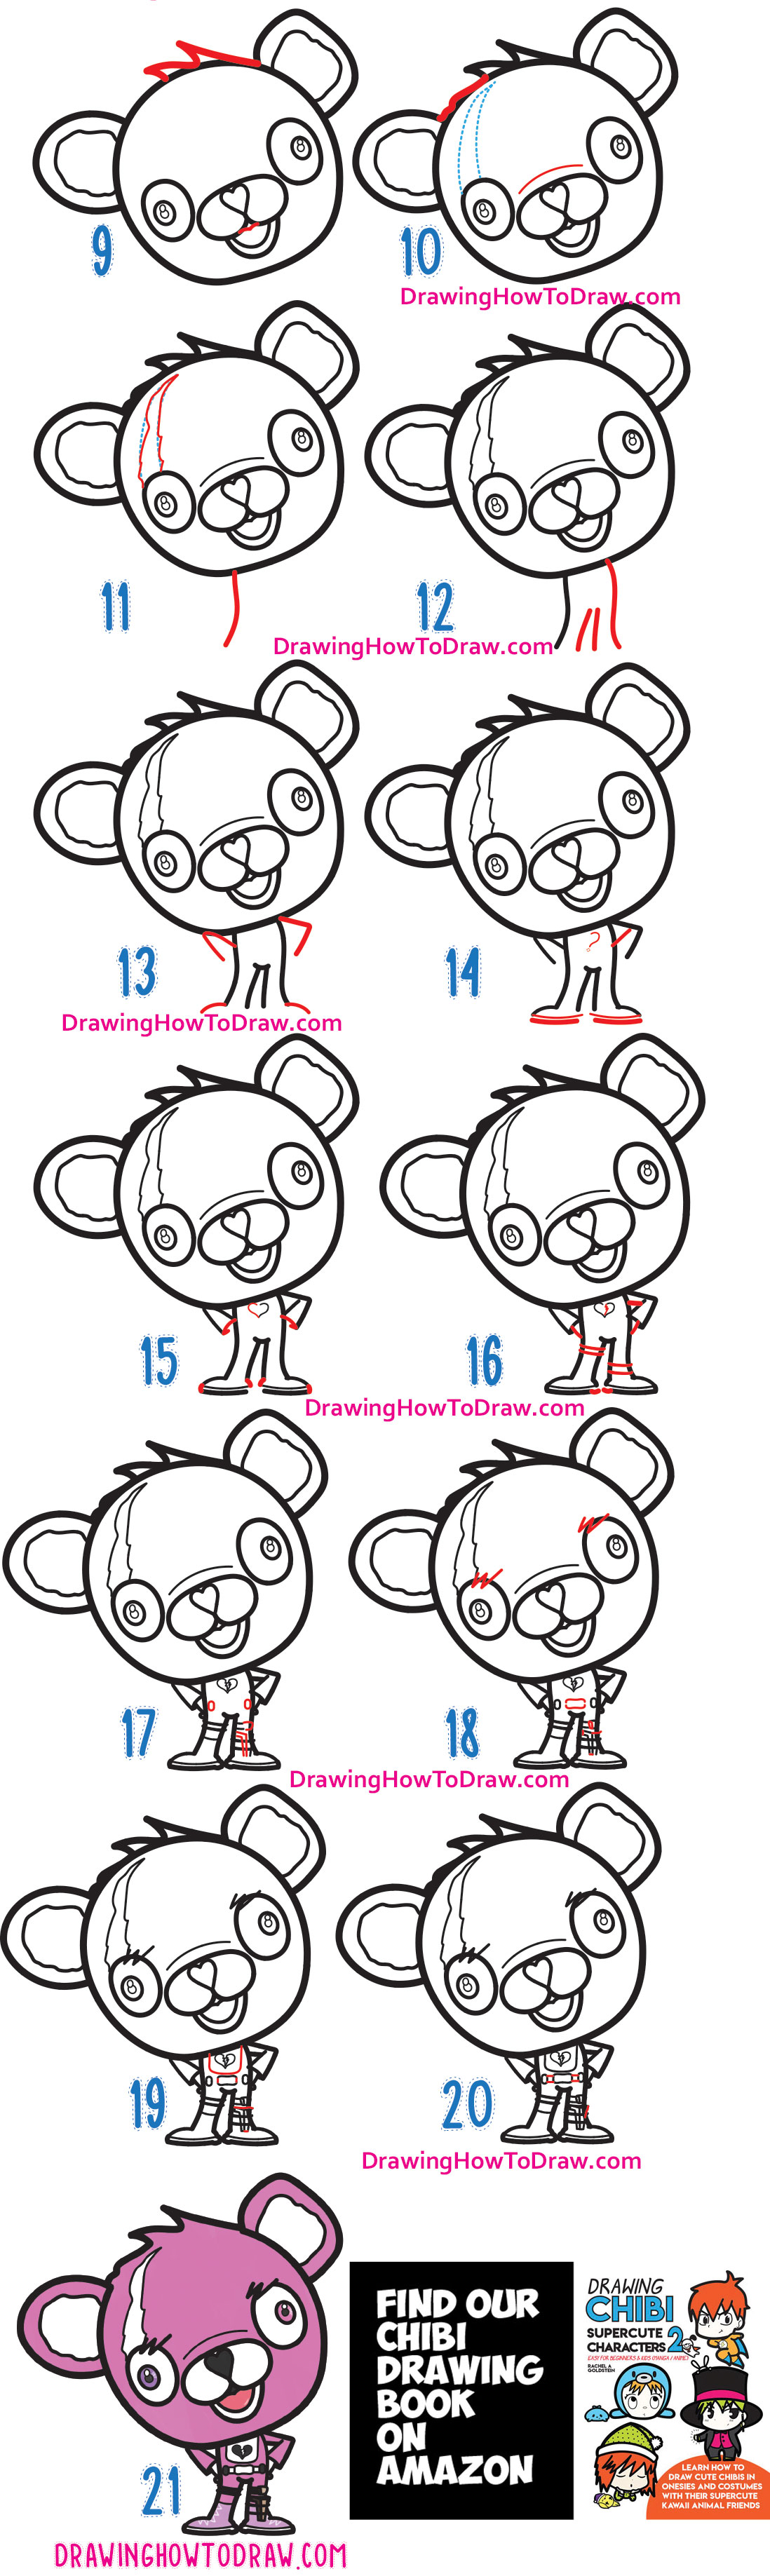 How to Draw a Cute / Chibi Cuddle Team Leader from Fortnite - Simple Steps Drawing Lesson for Beginners